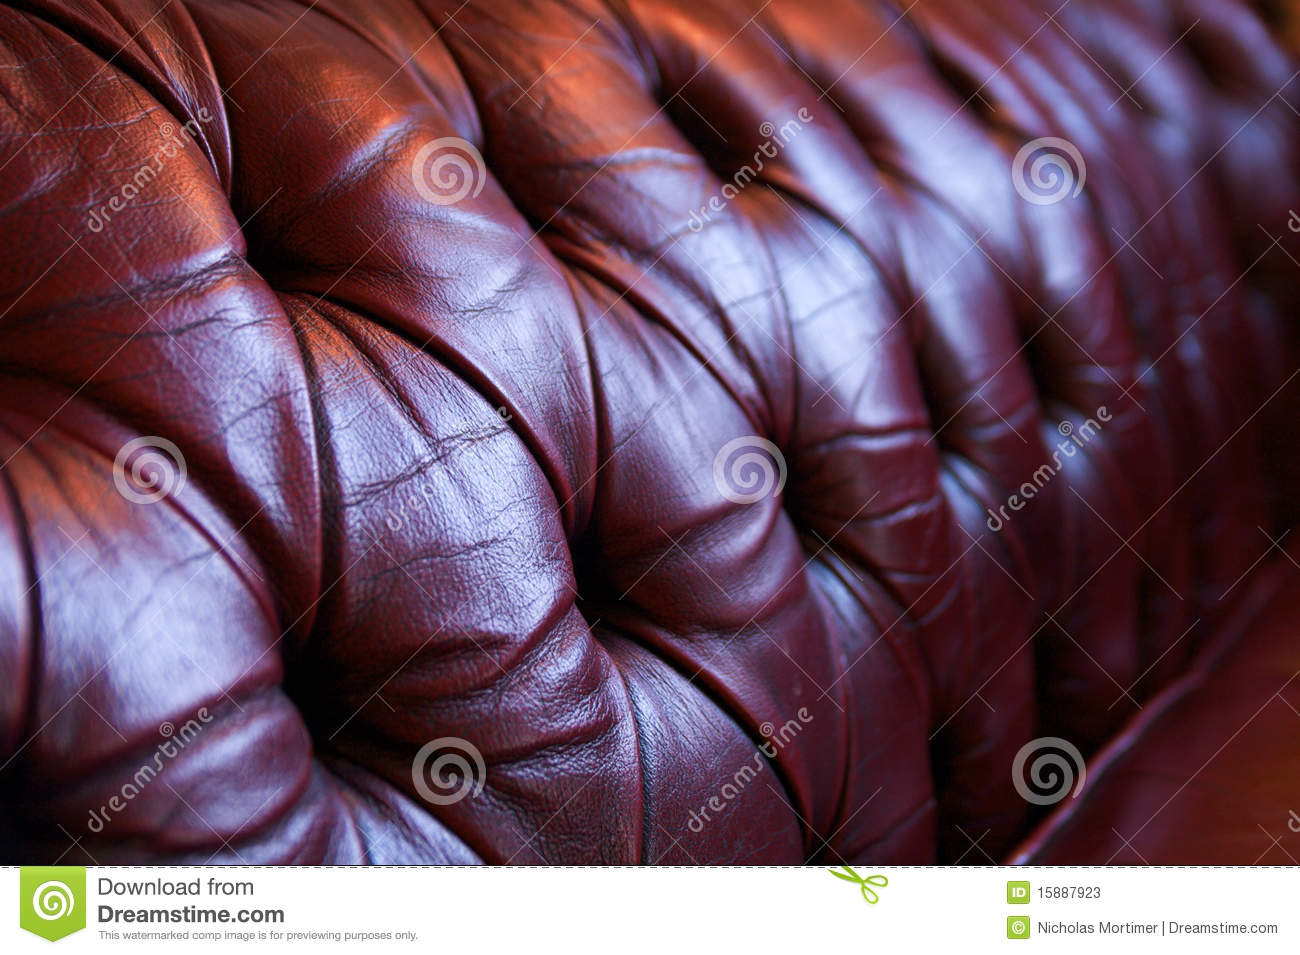 Stupendous Red Leather Chesterfield Sofa Stock Image Image Of Chair Squirreltailoven Fun Painted Chair Ideas Images Squirreltailovenorg